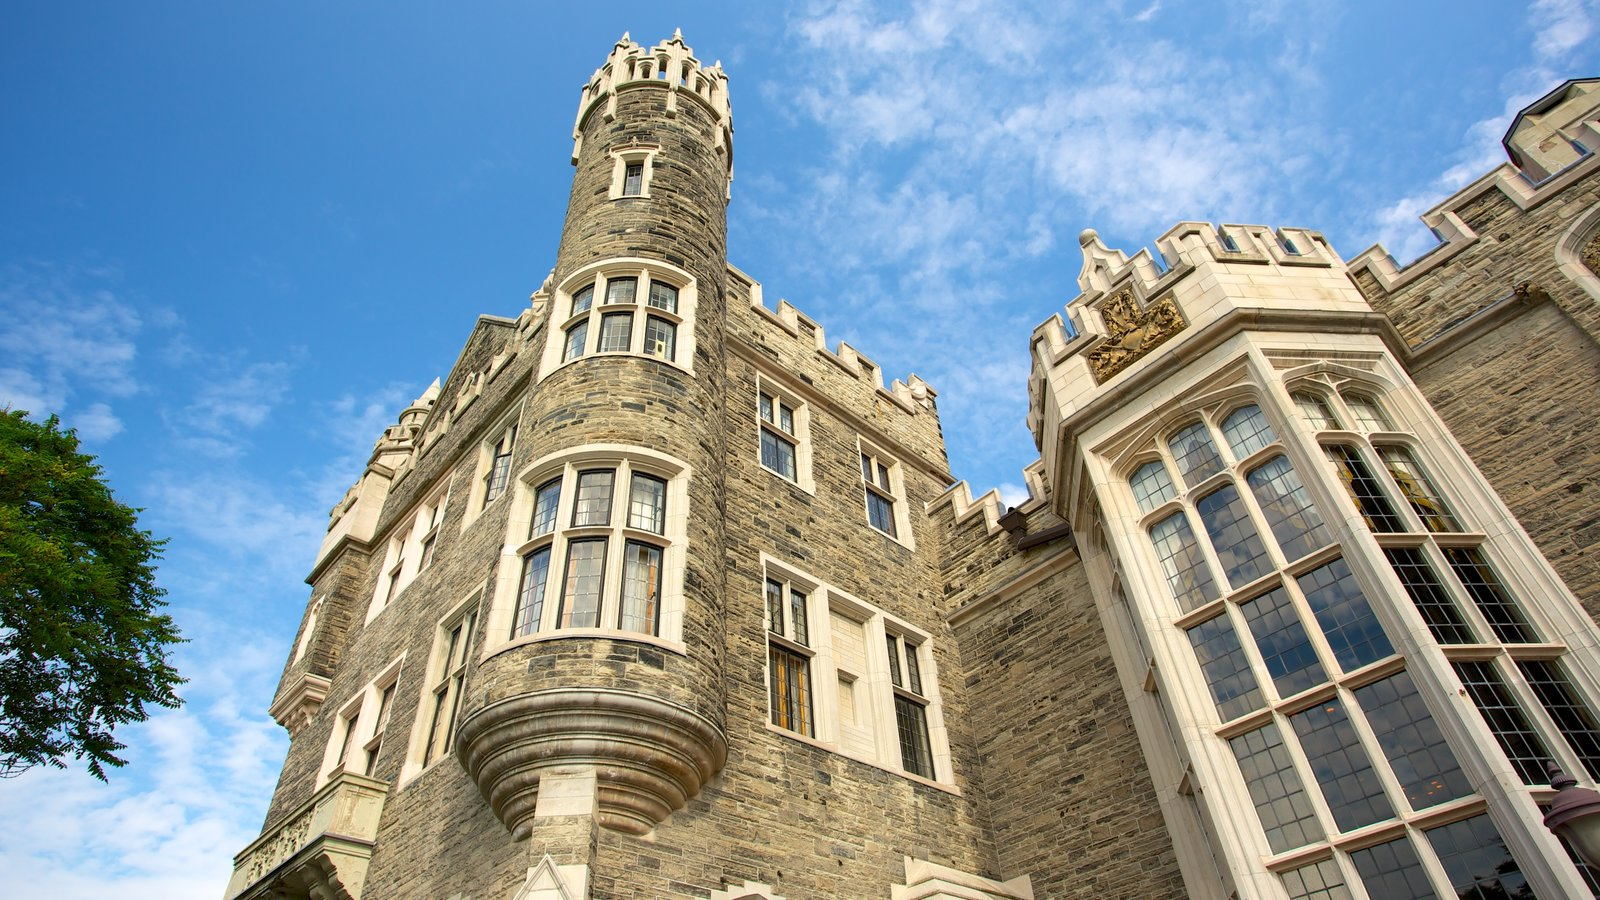 Casa Loma featuring a castle, heritage architecture and heritage elements